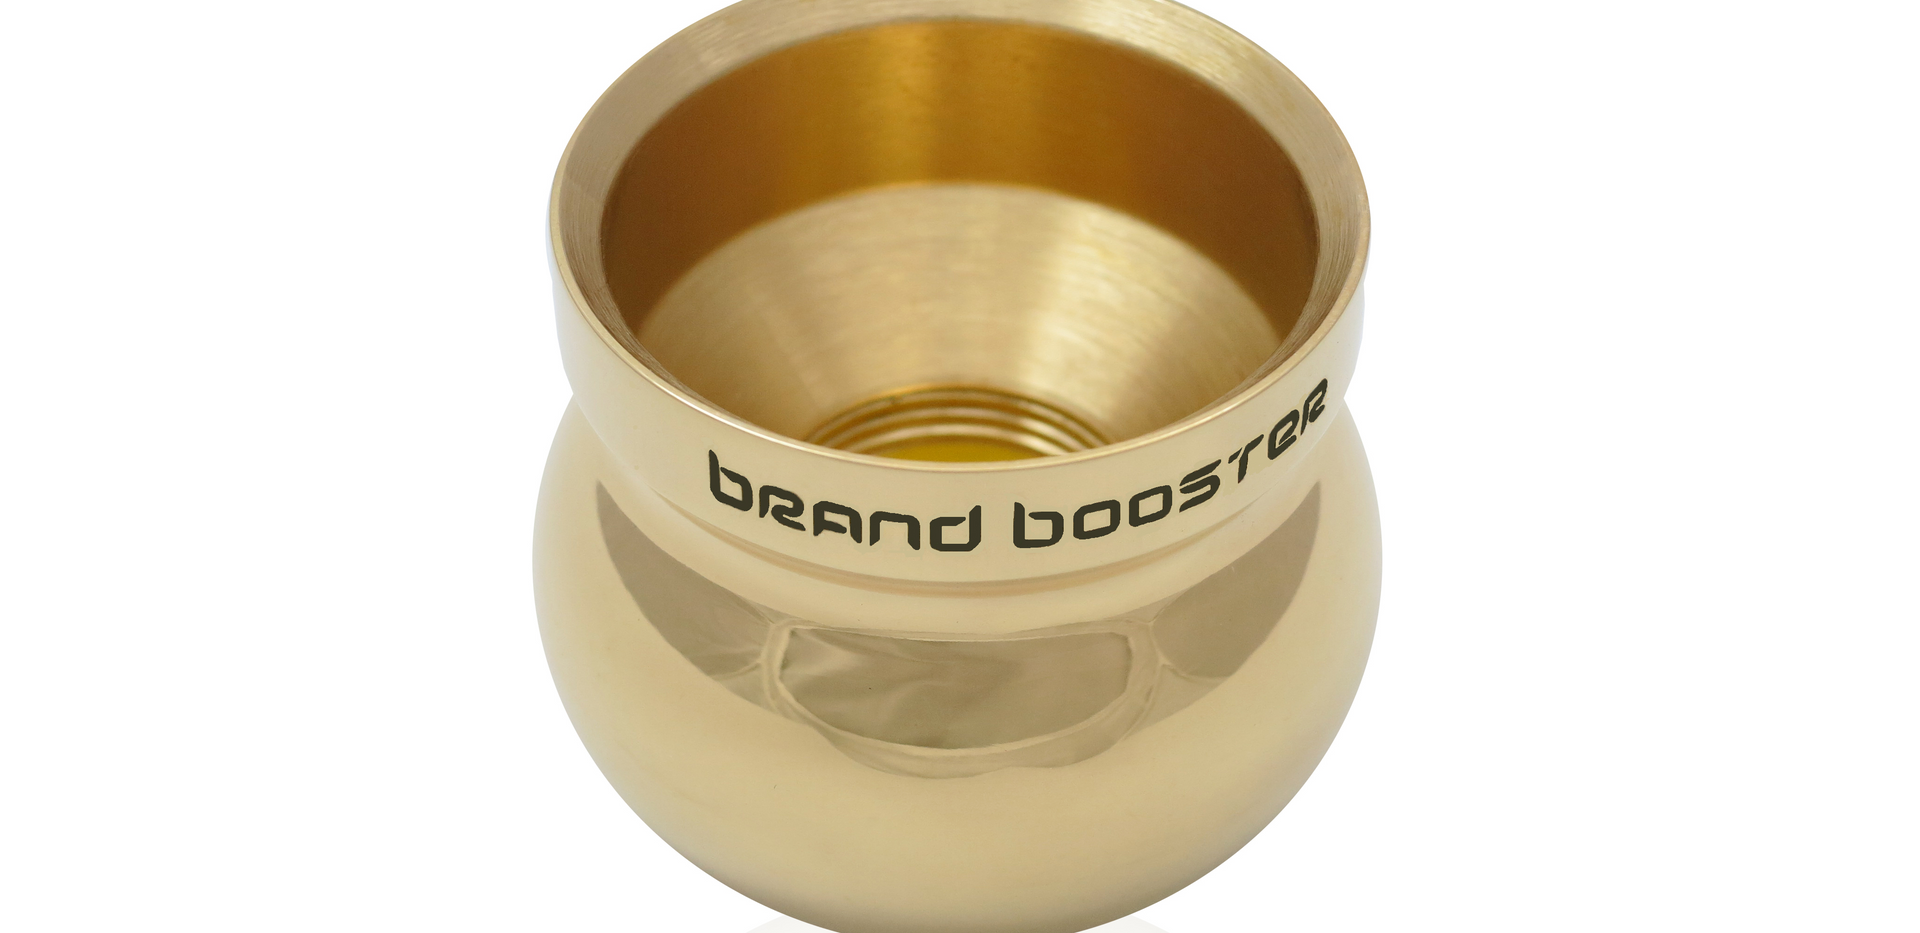 tb Brand Booster Gold polished.png